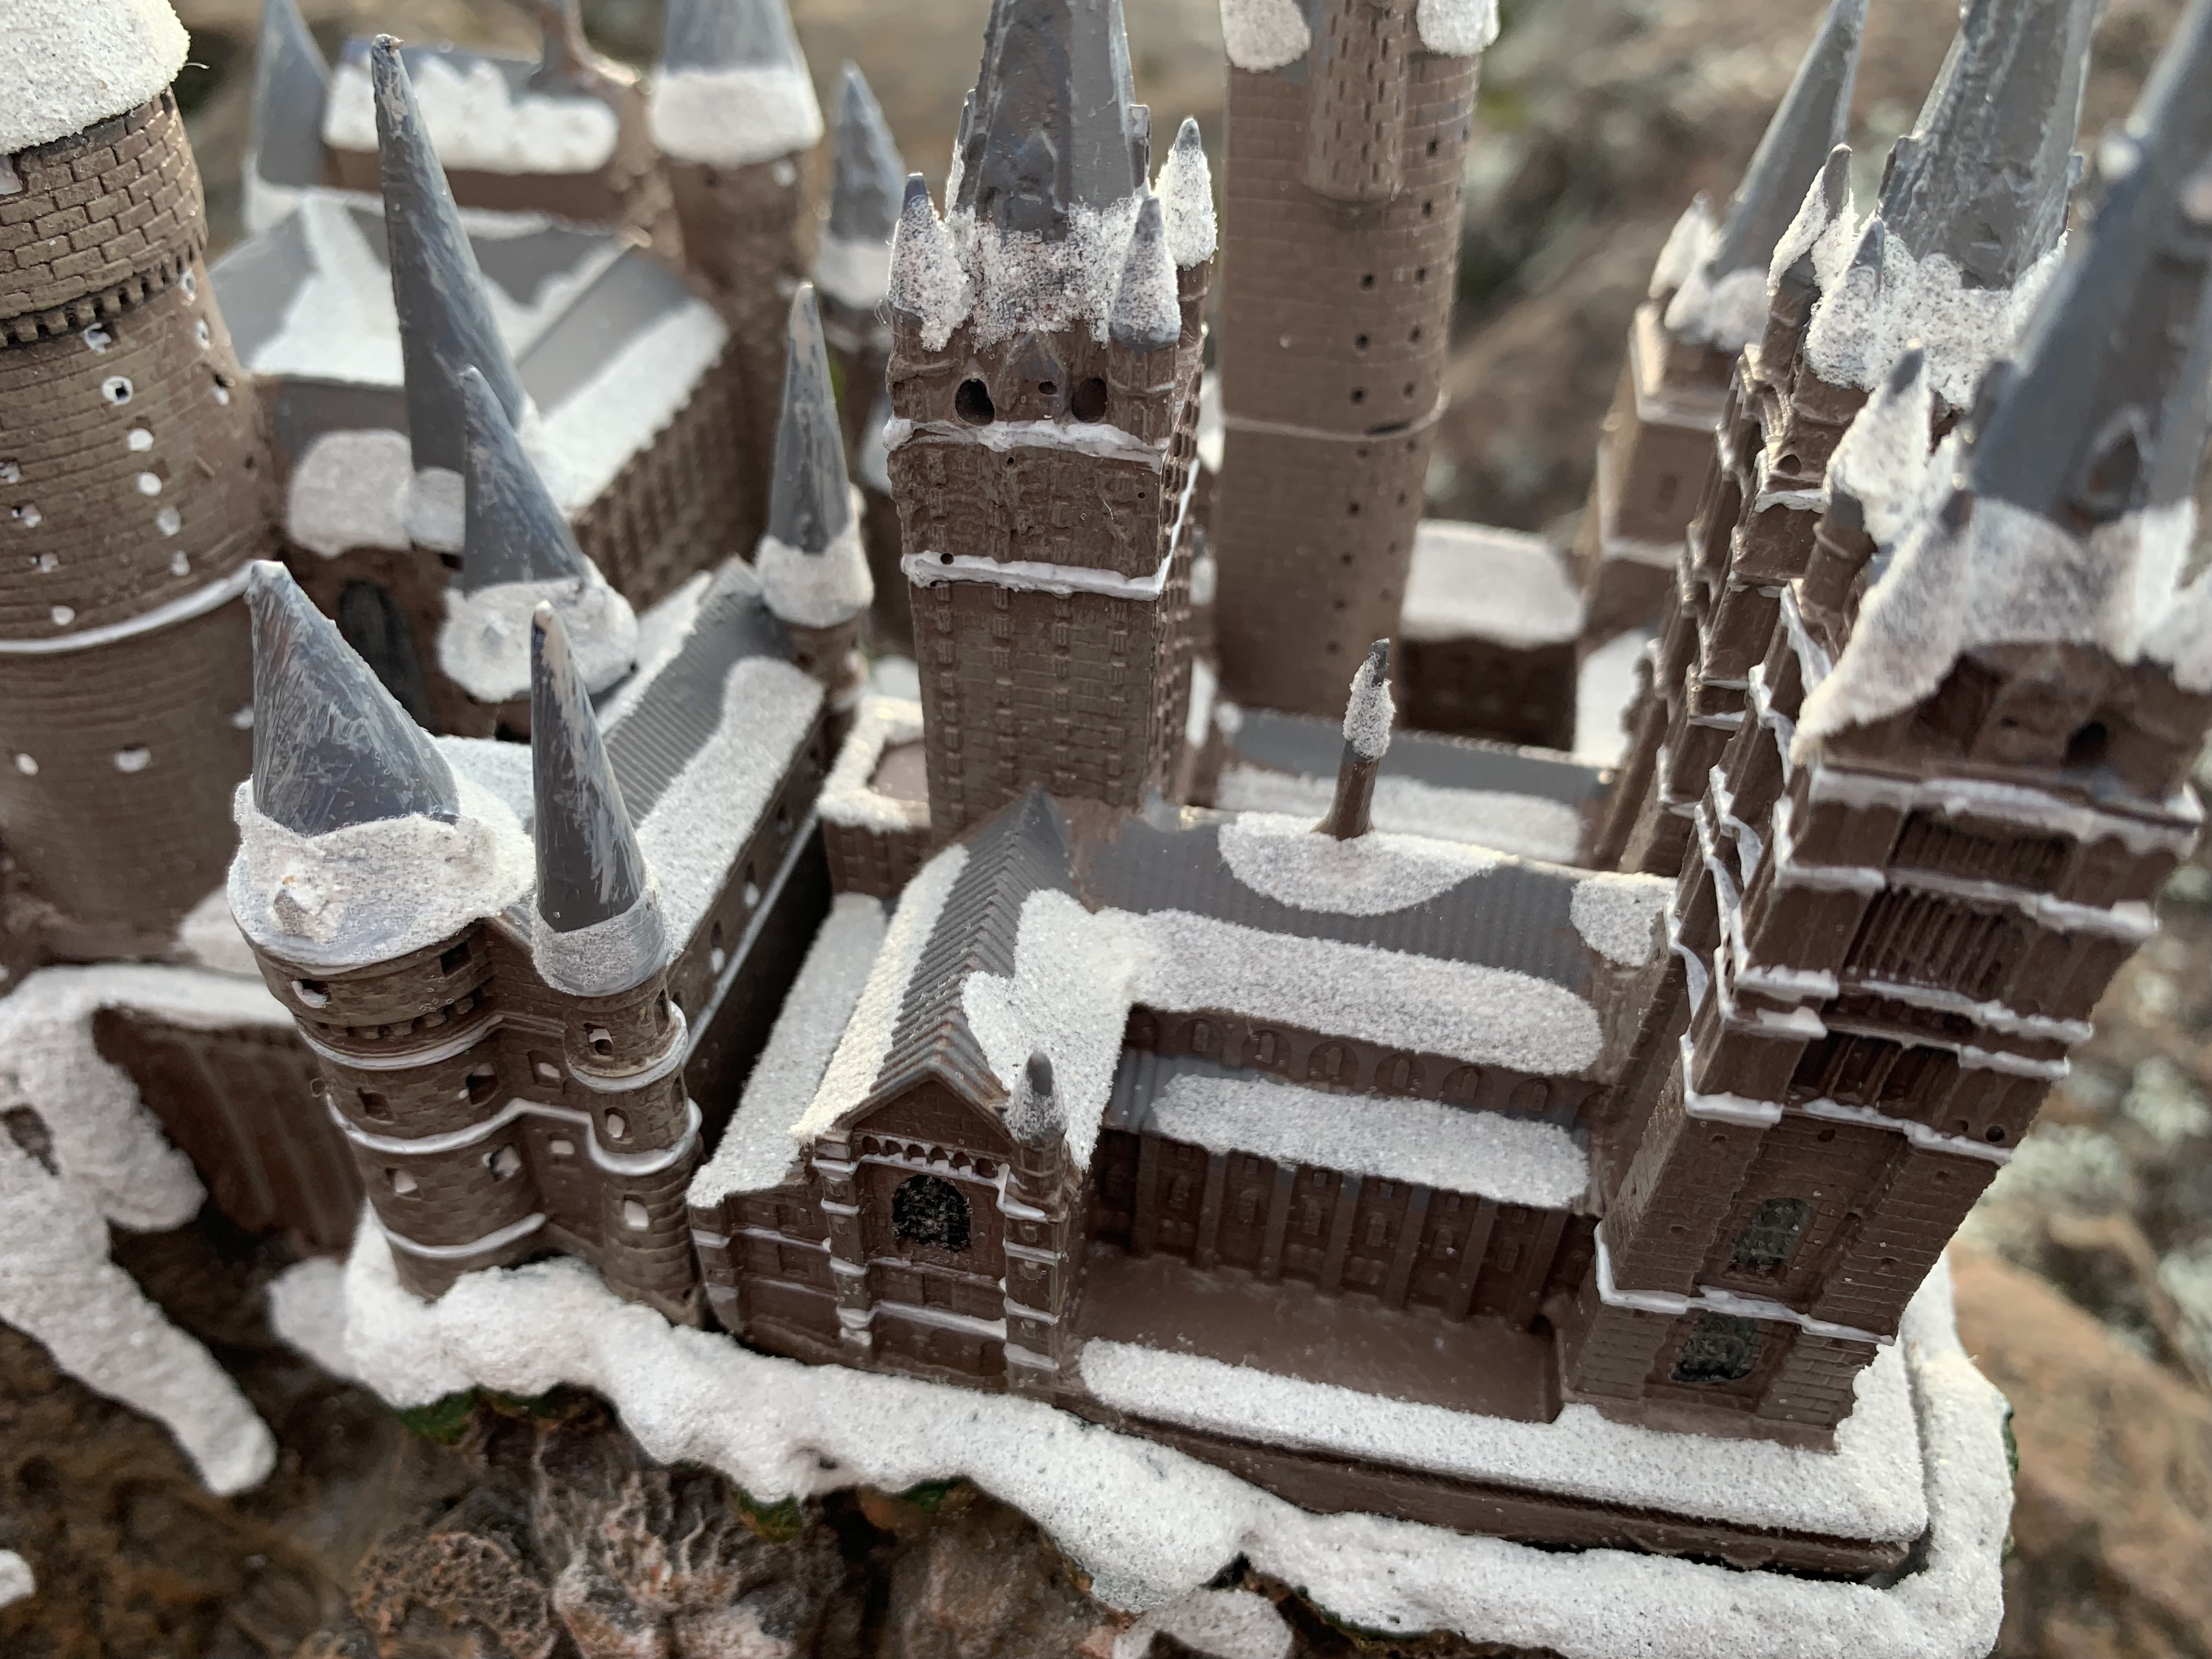 """HOGWARTS™"" School of Witchcraft and Wizardry from The Bradford Exchange, view from the top showing the snow-covered roof of the Great Hall and surrounding towers and turrets"